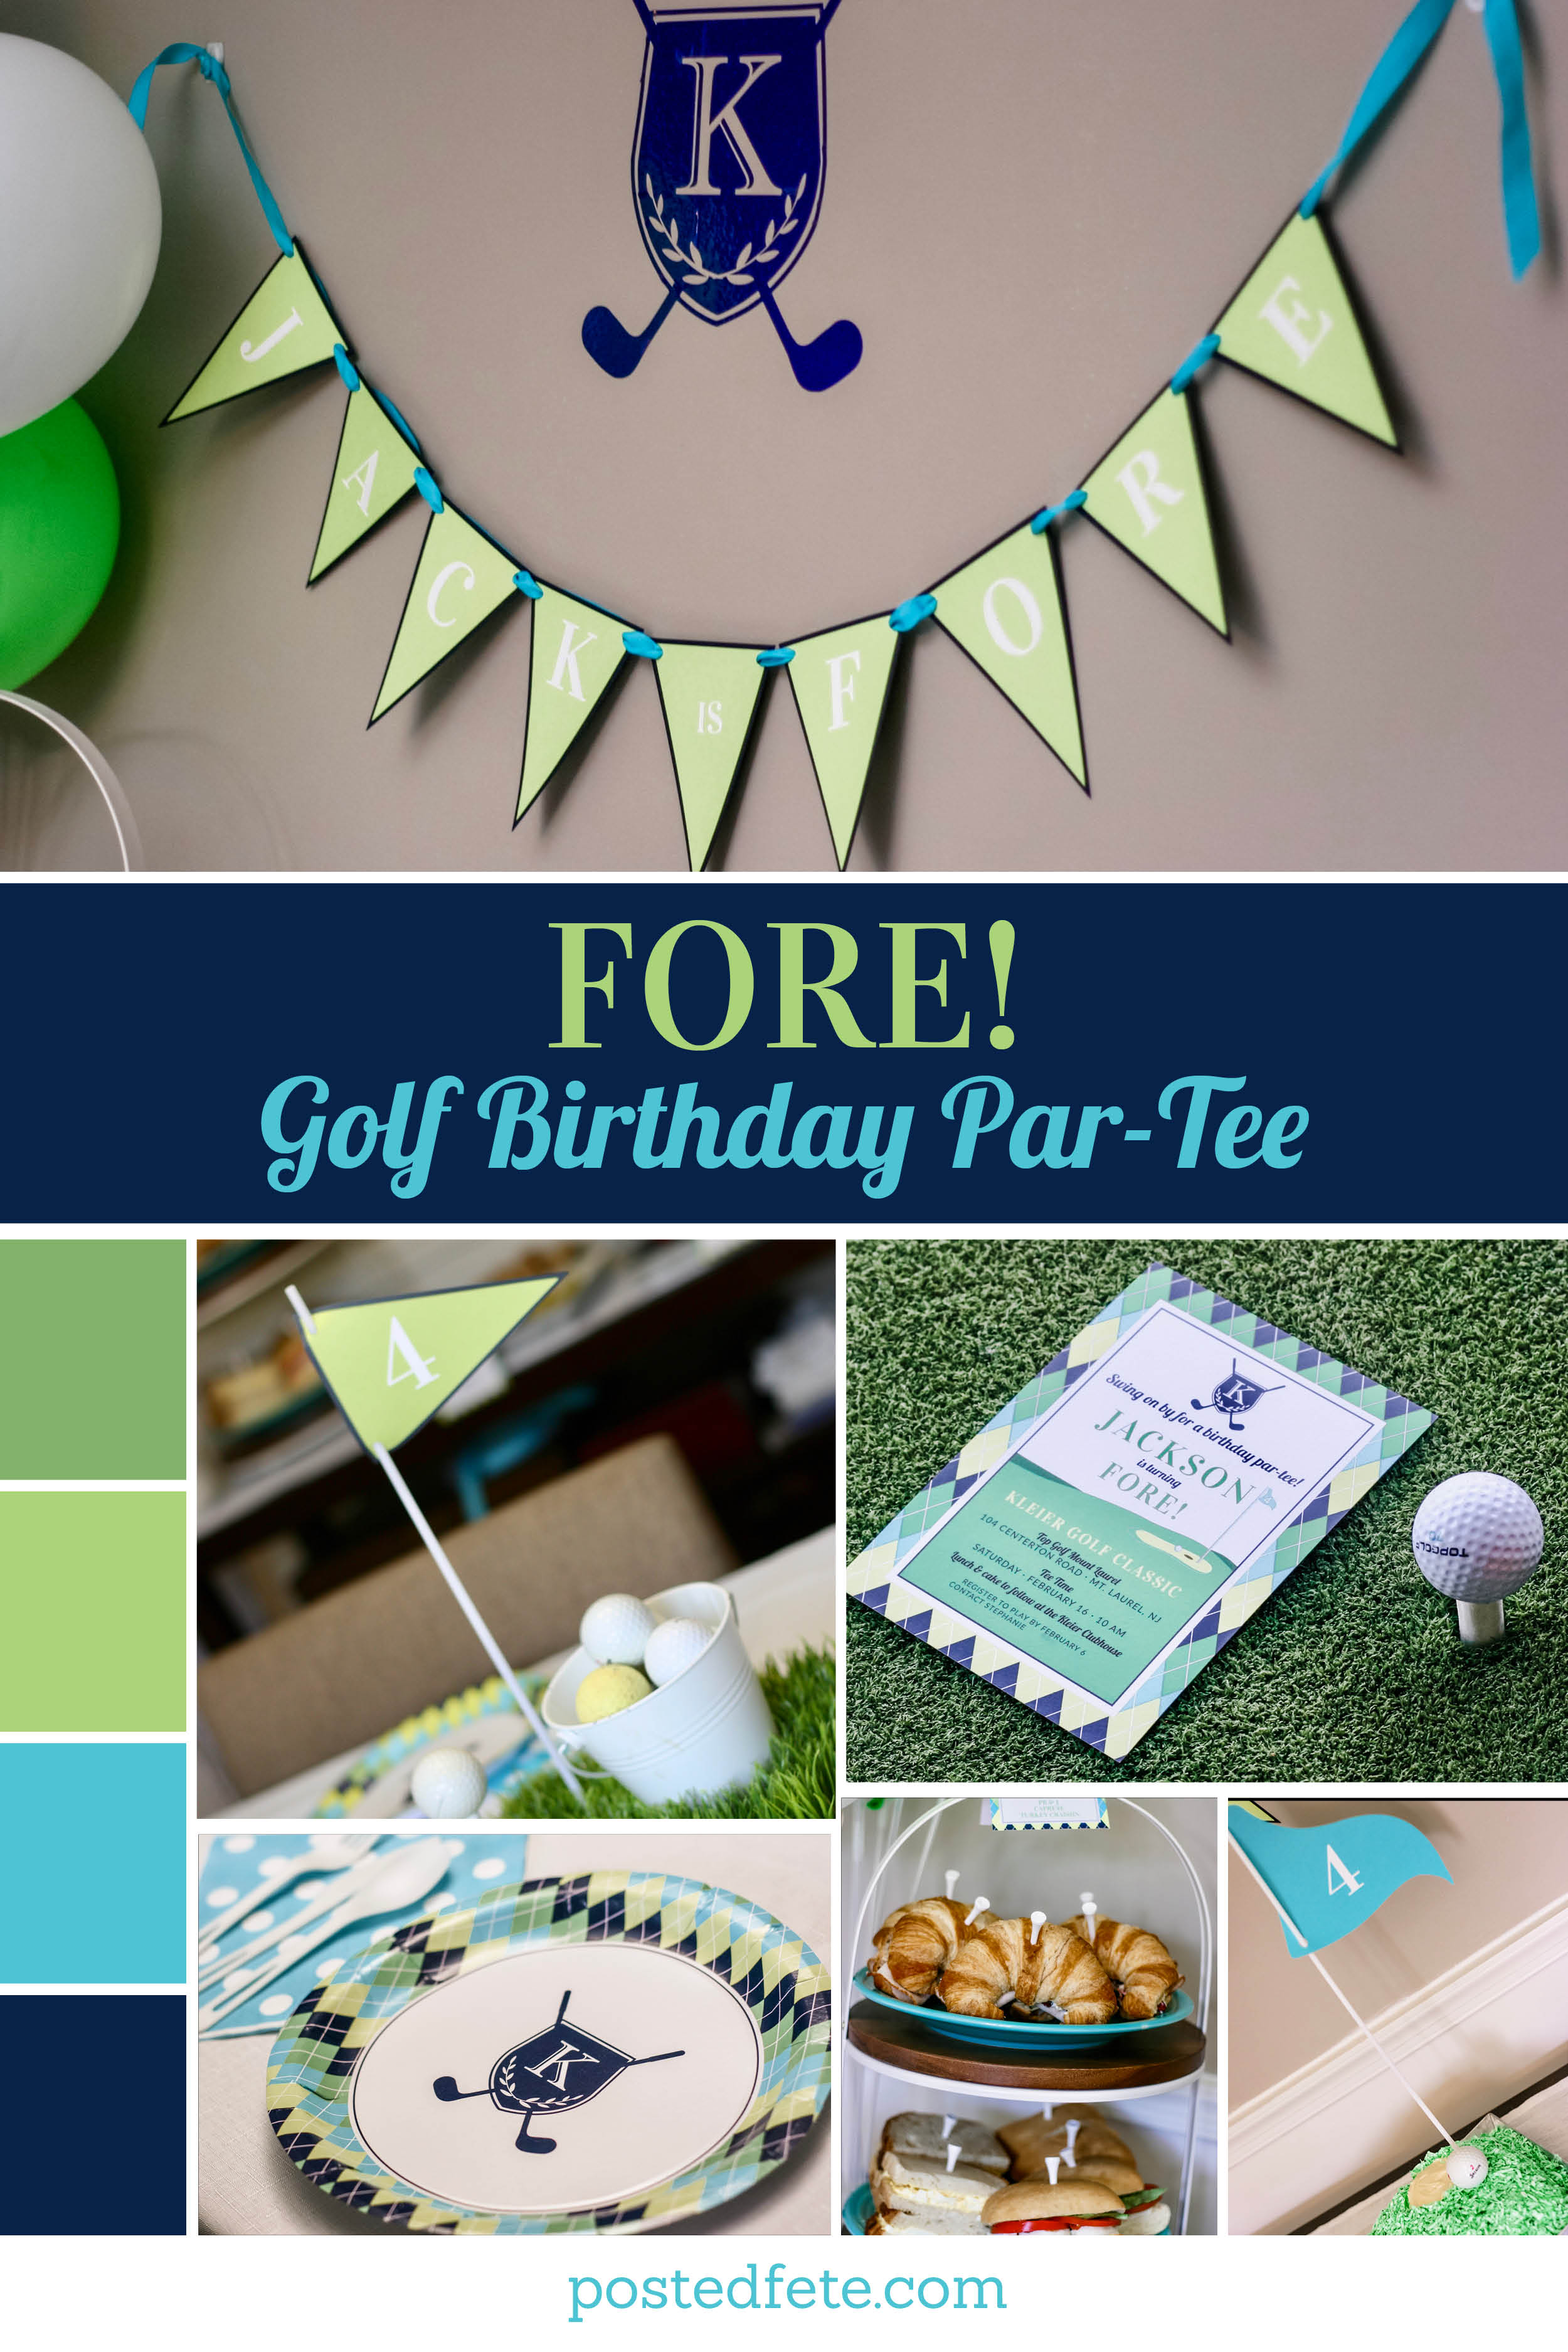 FORE! Golf party decorations and ideas for a hole in one, fore or golf par-tee | by Posted Fete | #golfparty